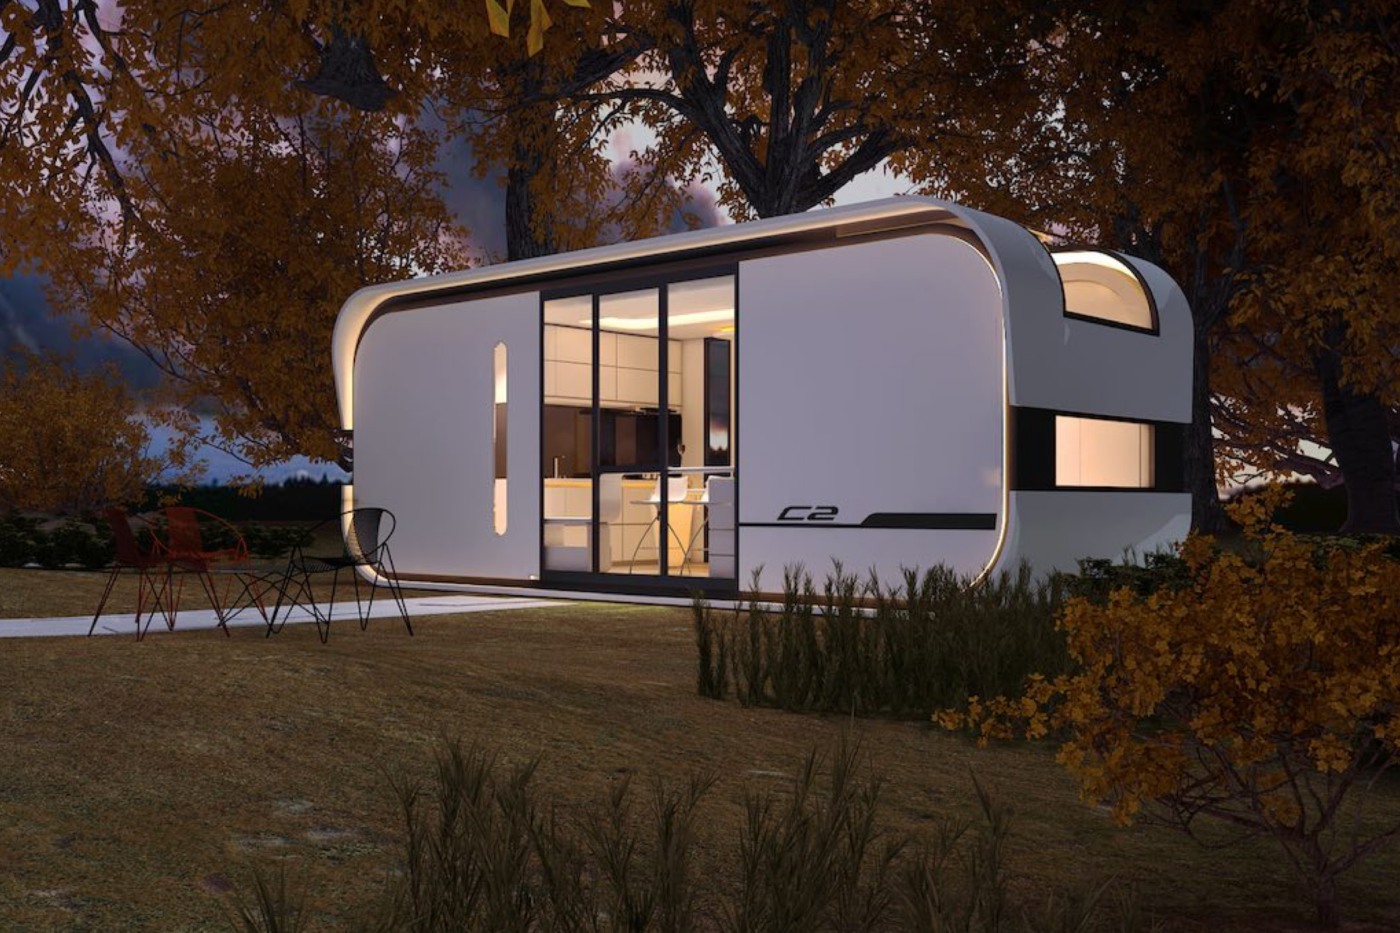 $19K pre-fab home includes artificial intelligence tech